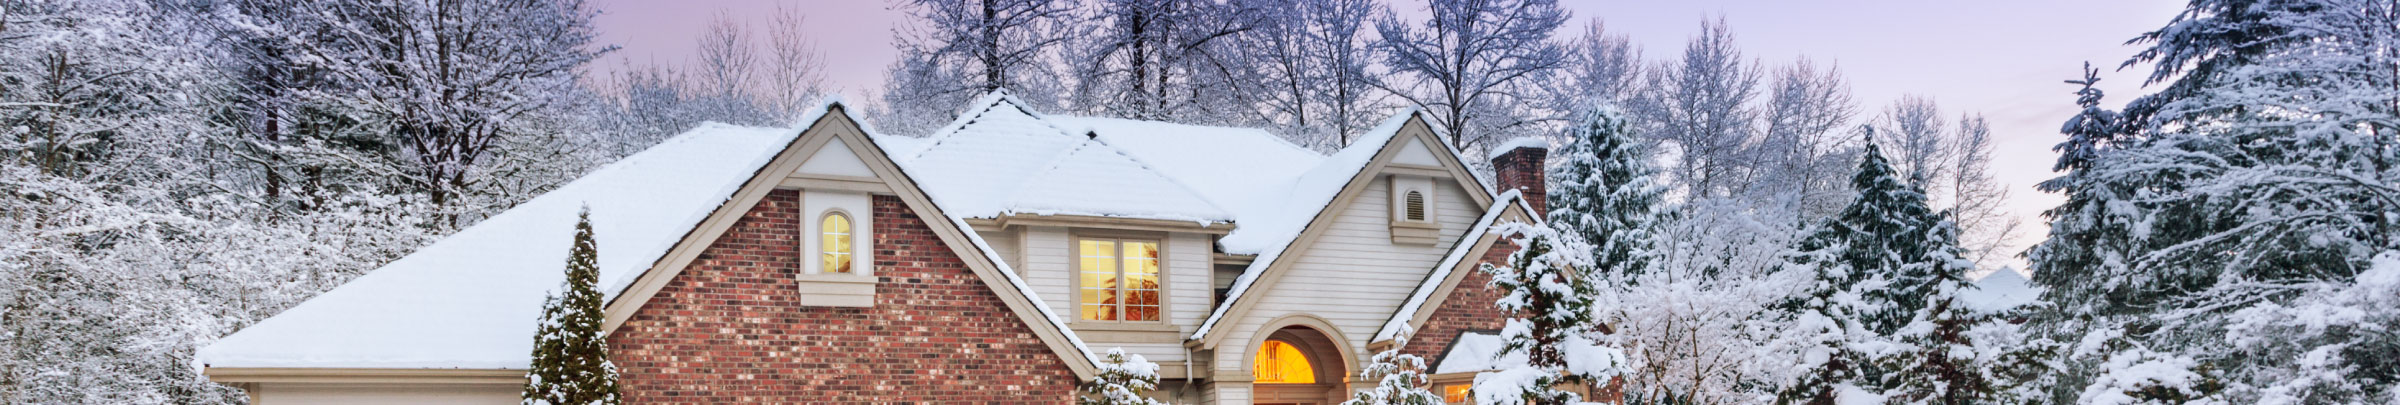 Stay comfortable all winter with B.F. Mahn taking care of your heating system service needs!